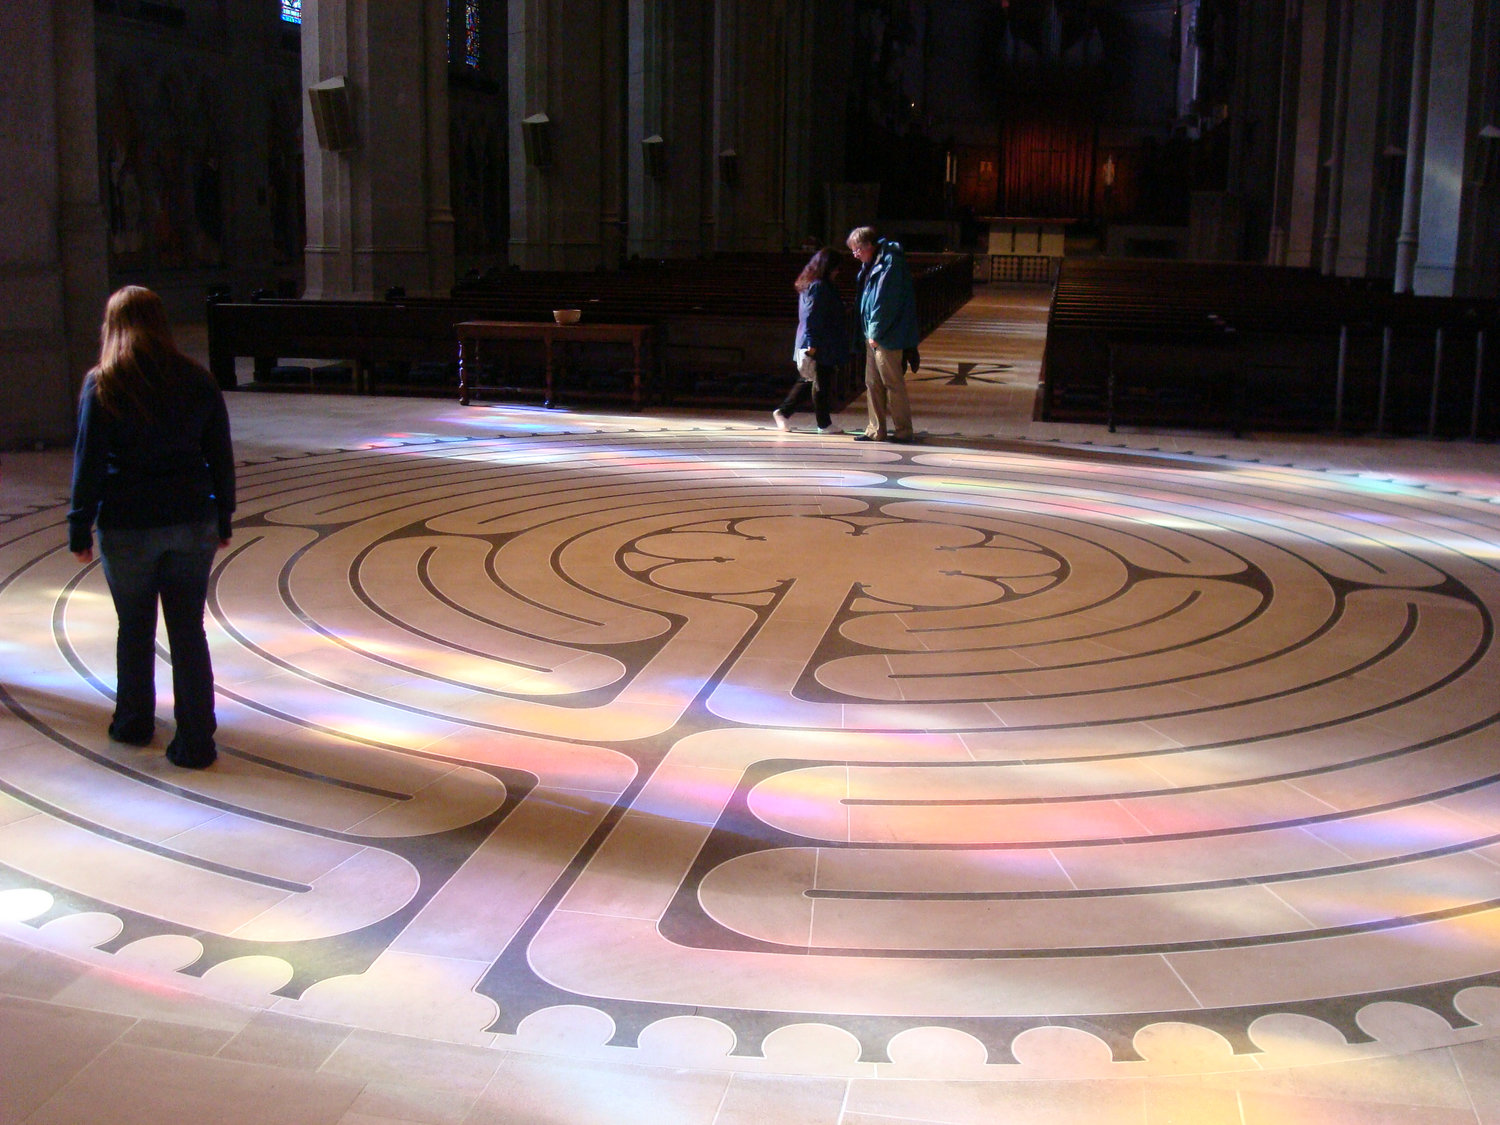 Chartres labyrinth design, Grace Cathedral, San Francisco, CA